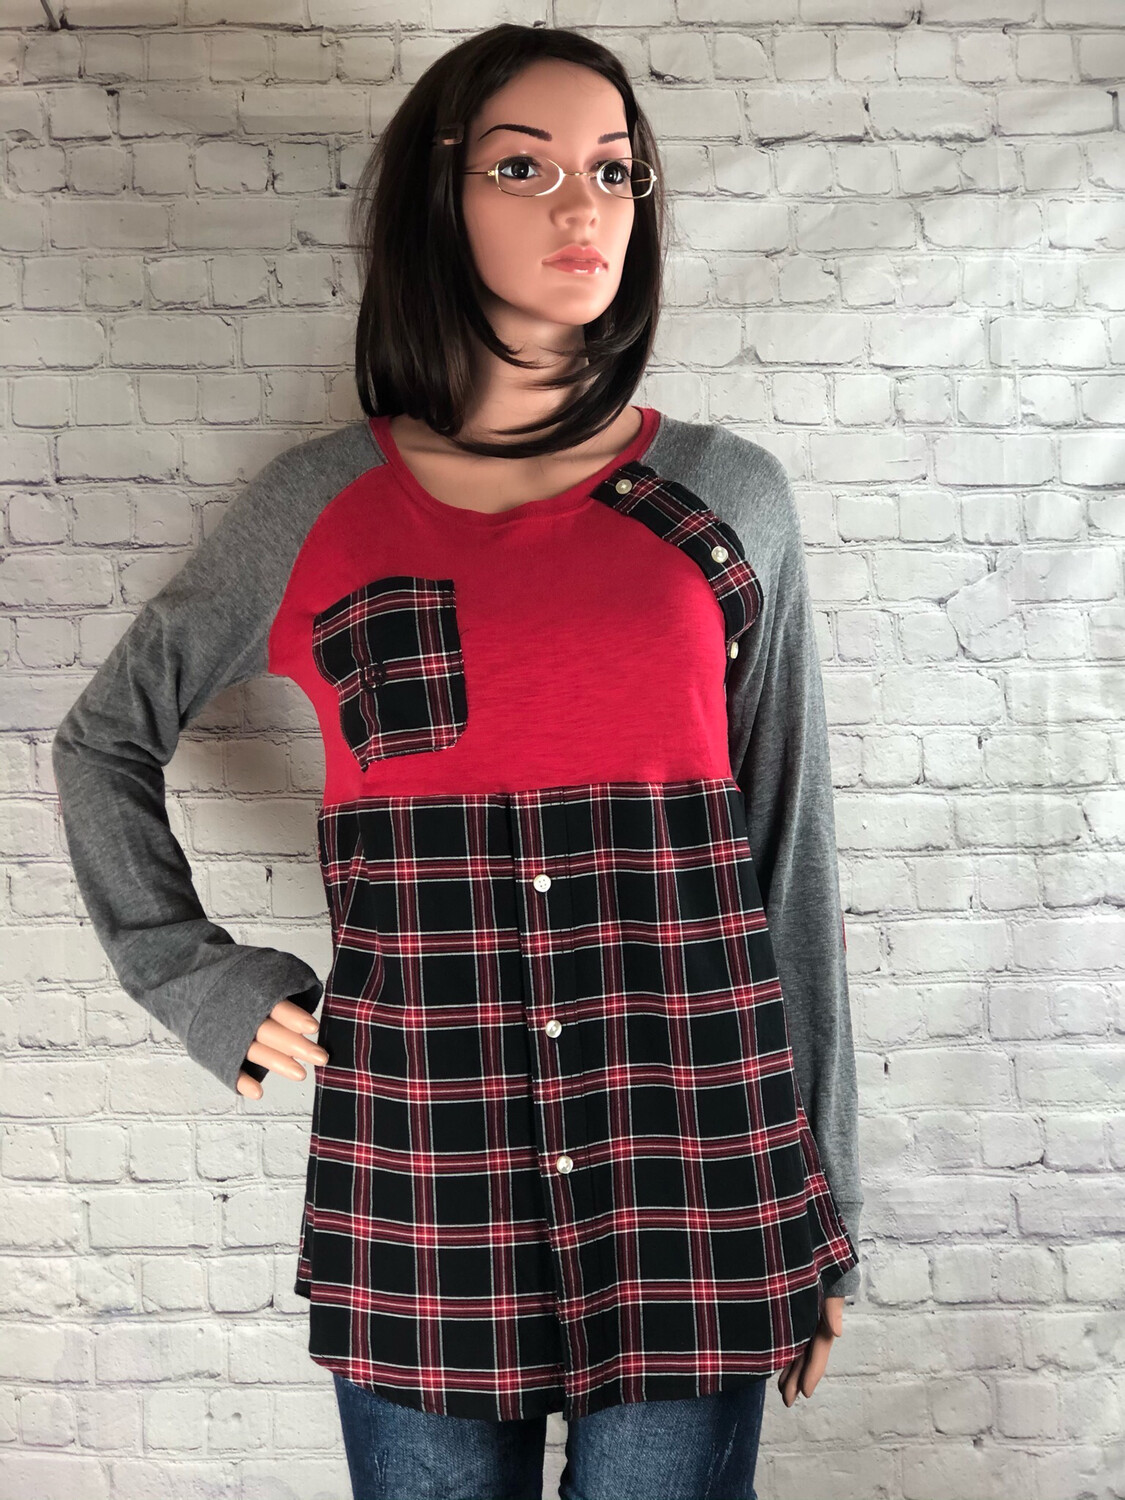 Plaid Restitched Upcycled Long Sleeve Tshirt Top Size Large